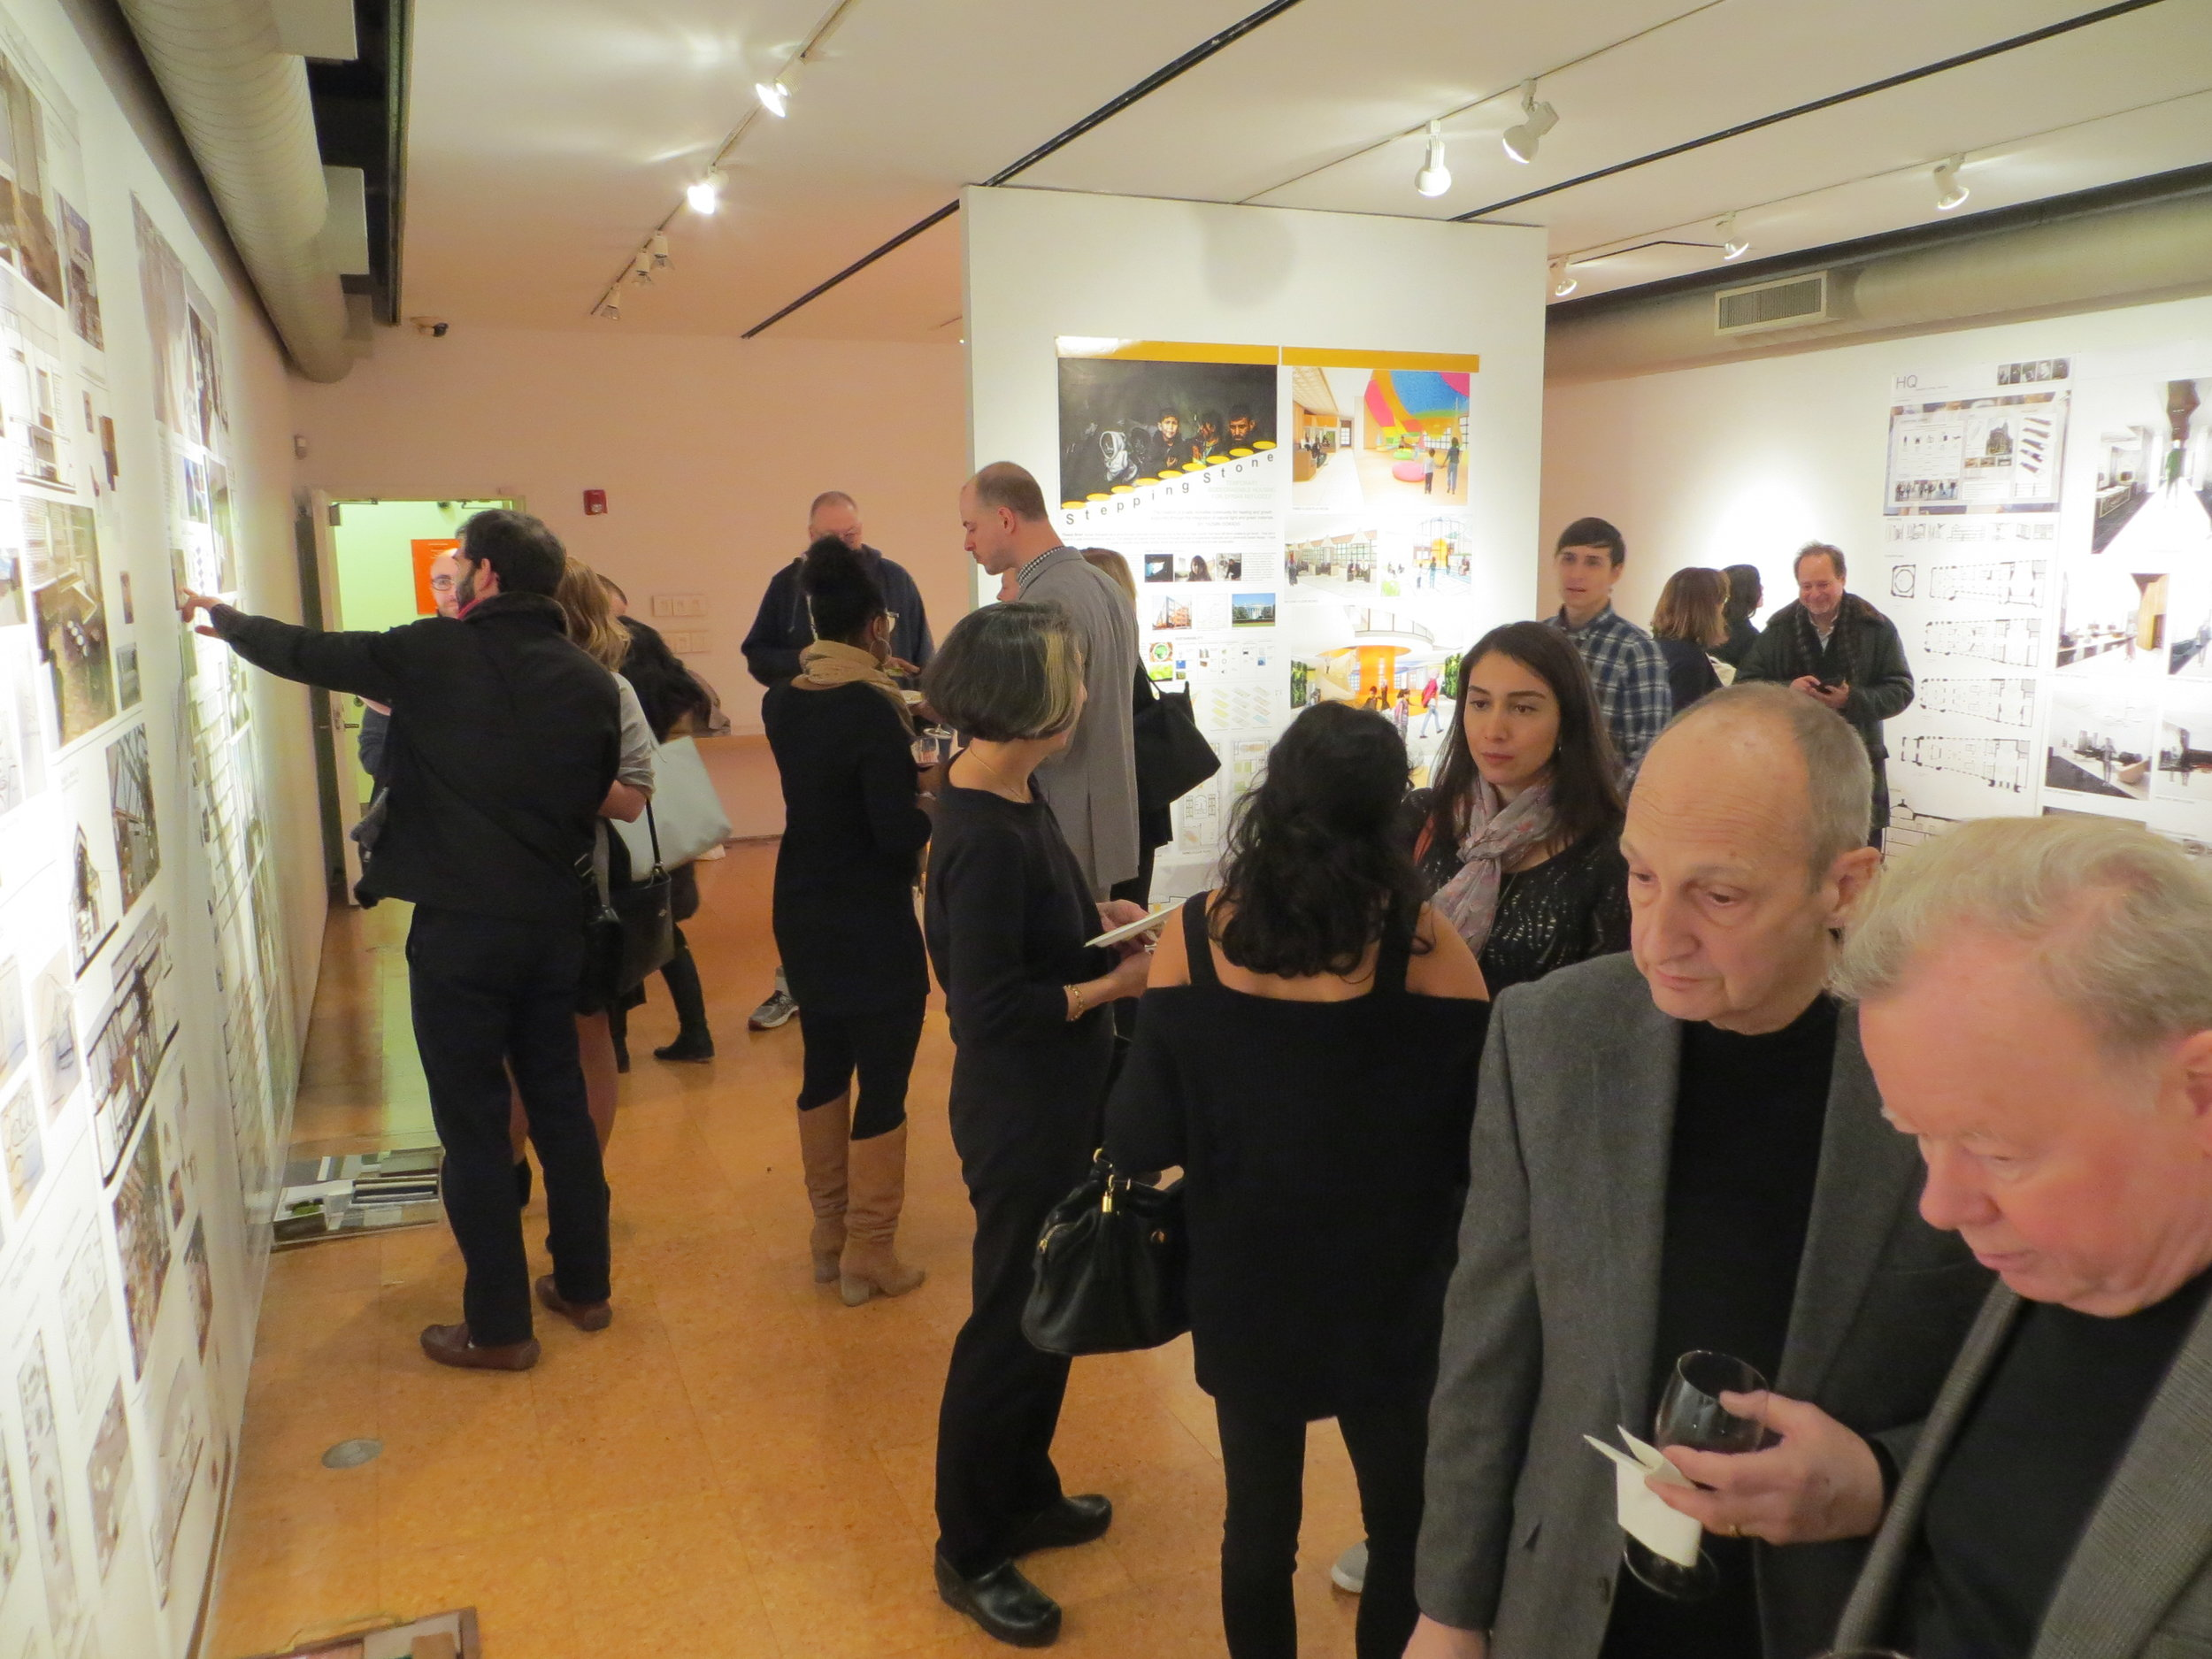 bfa-2017-winter-thesis-projects-exhibition_32753250315_o.jpg